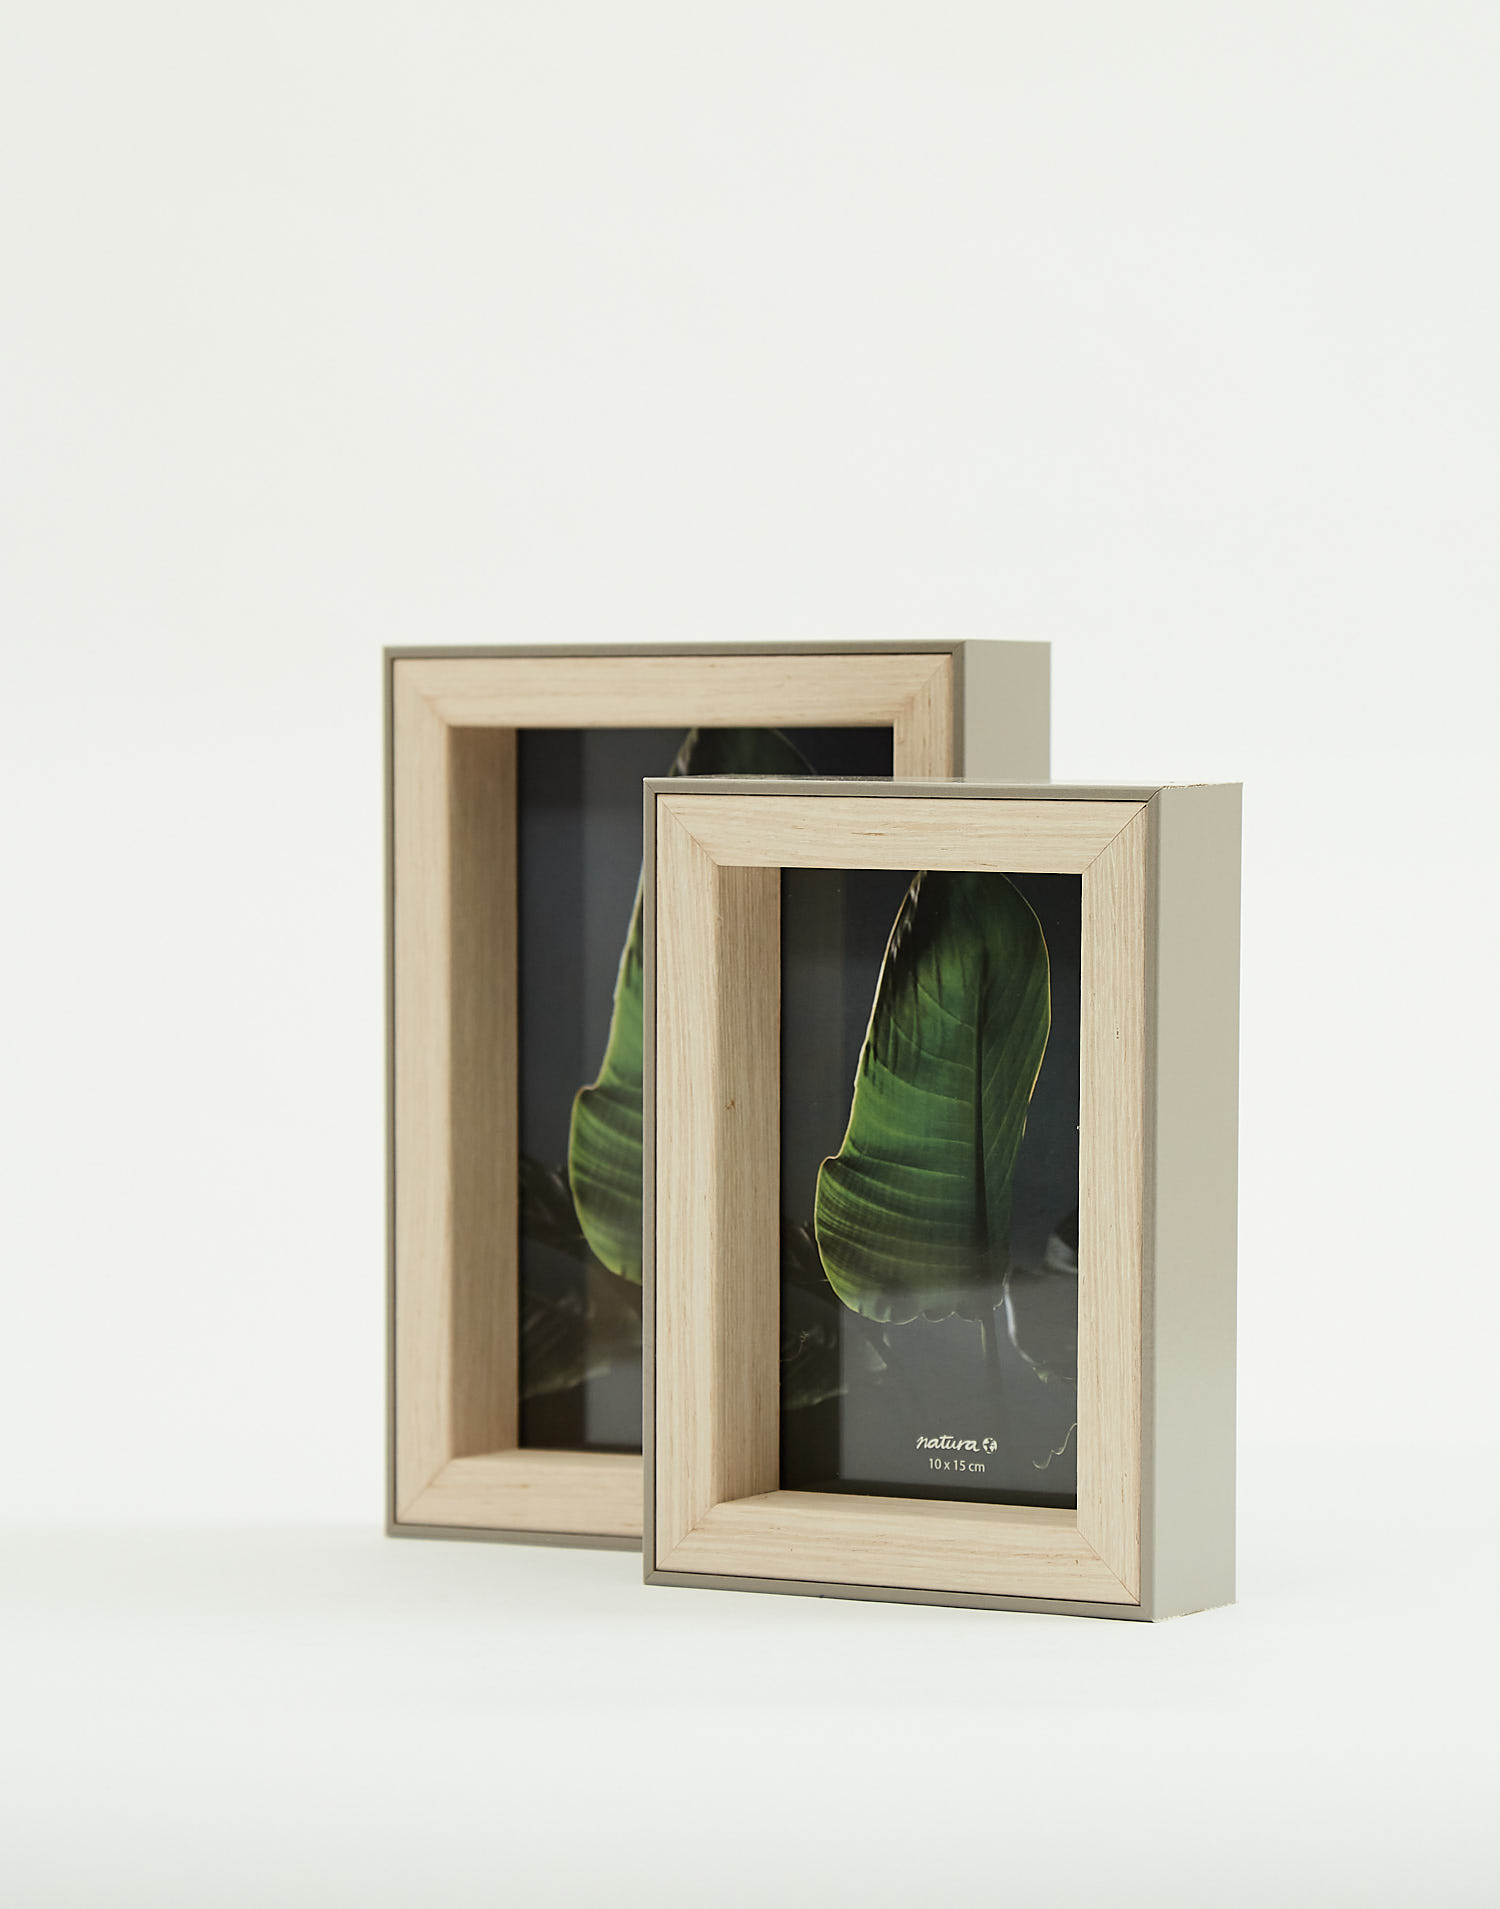 Thick wooden frame 10*15